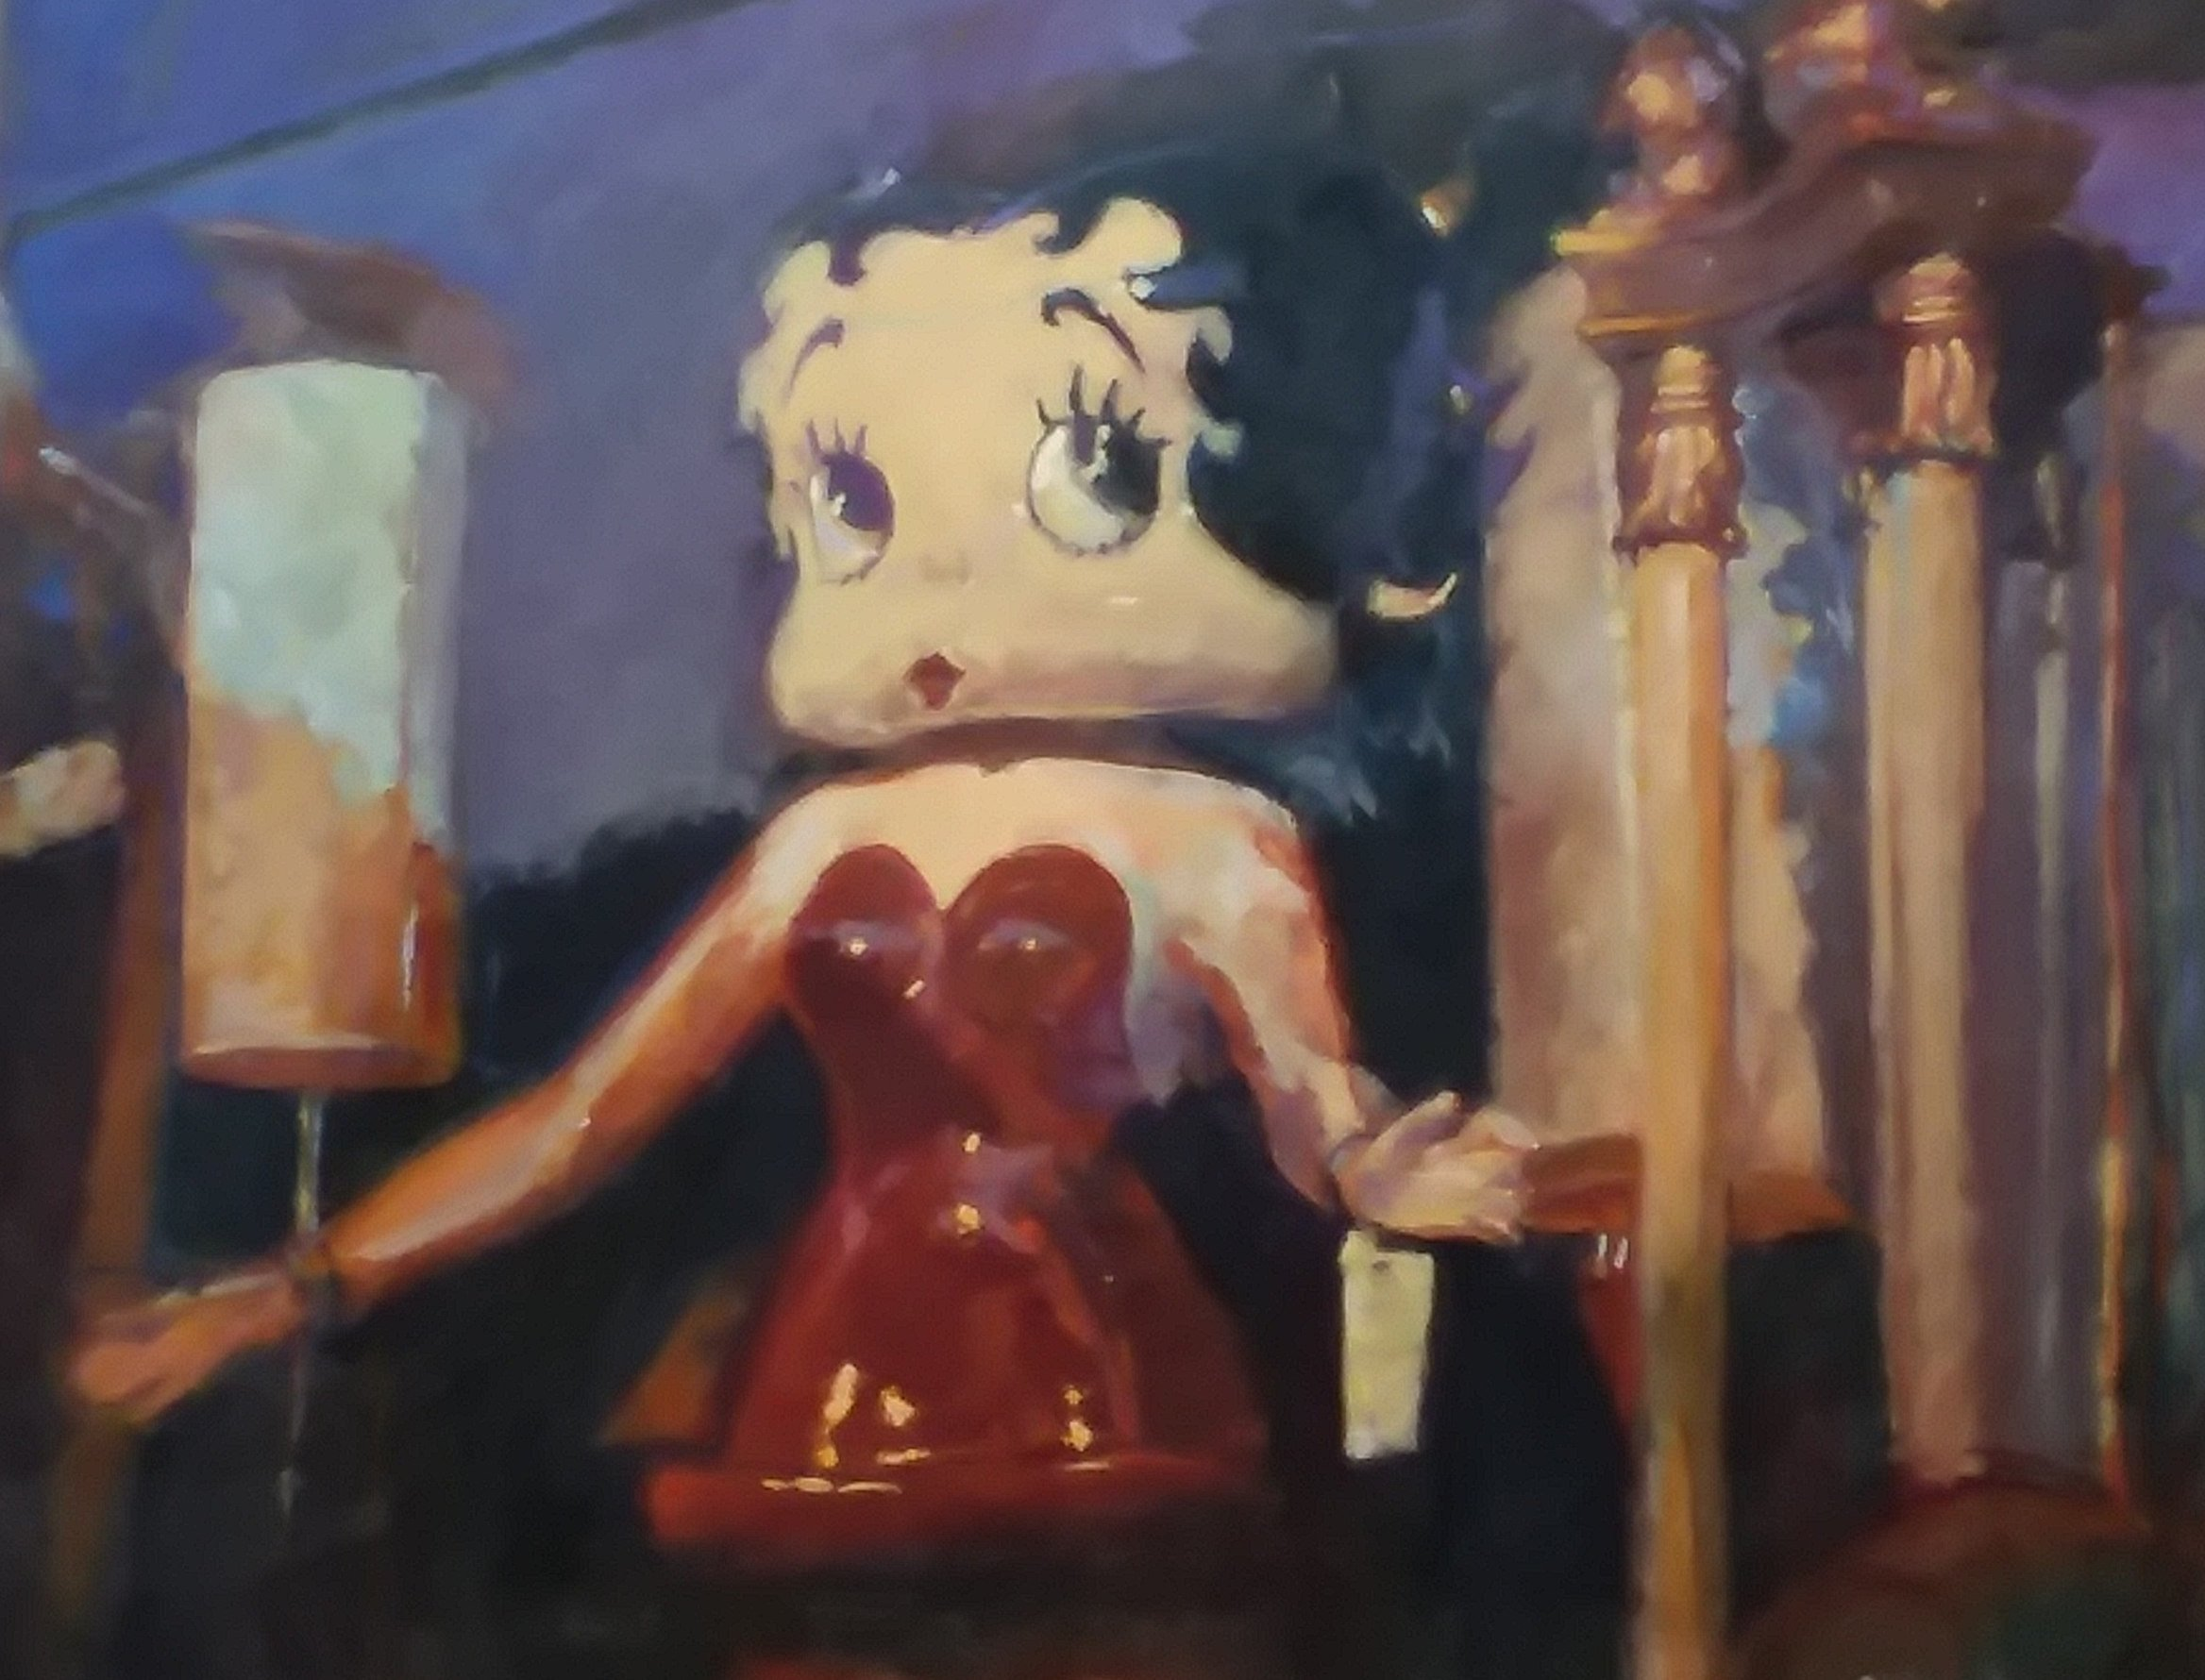 Betty Boop in the Window by Henryk Ptasiewicz 30x40 oil on canvas